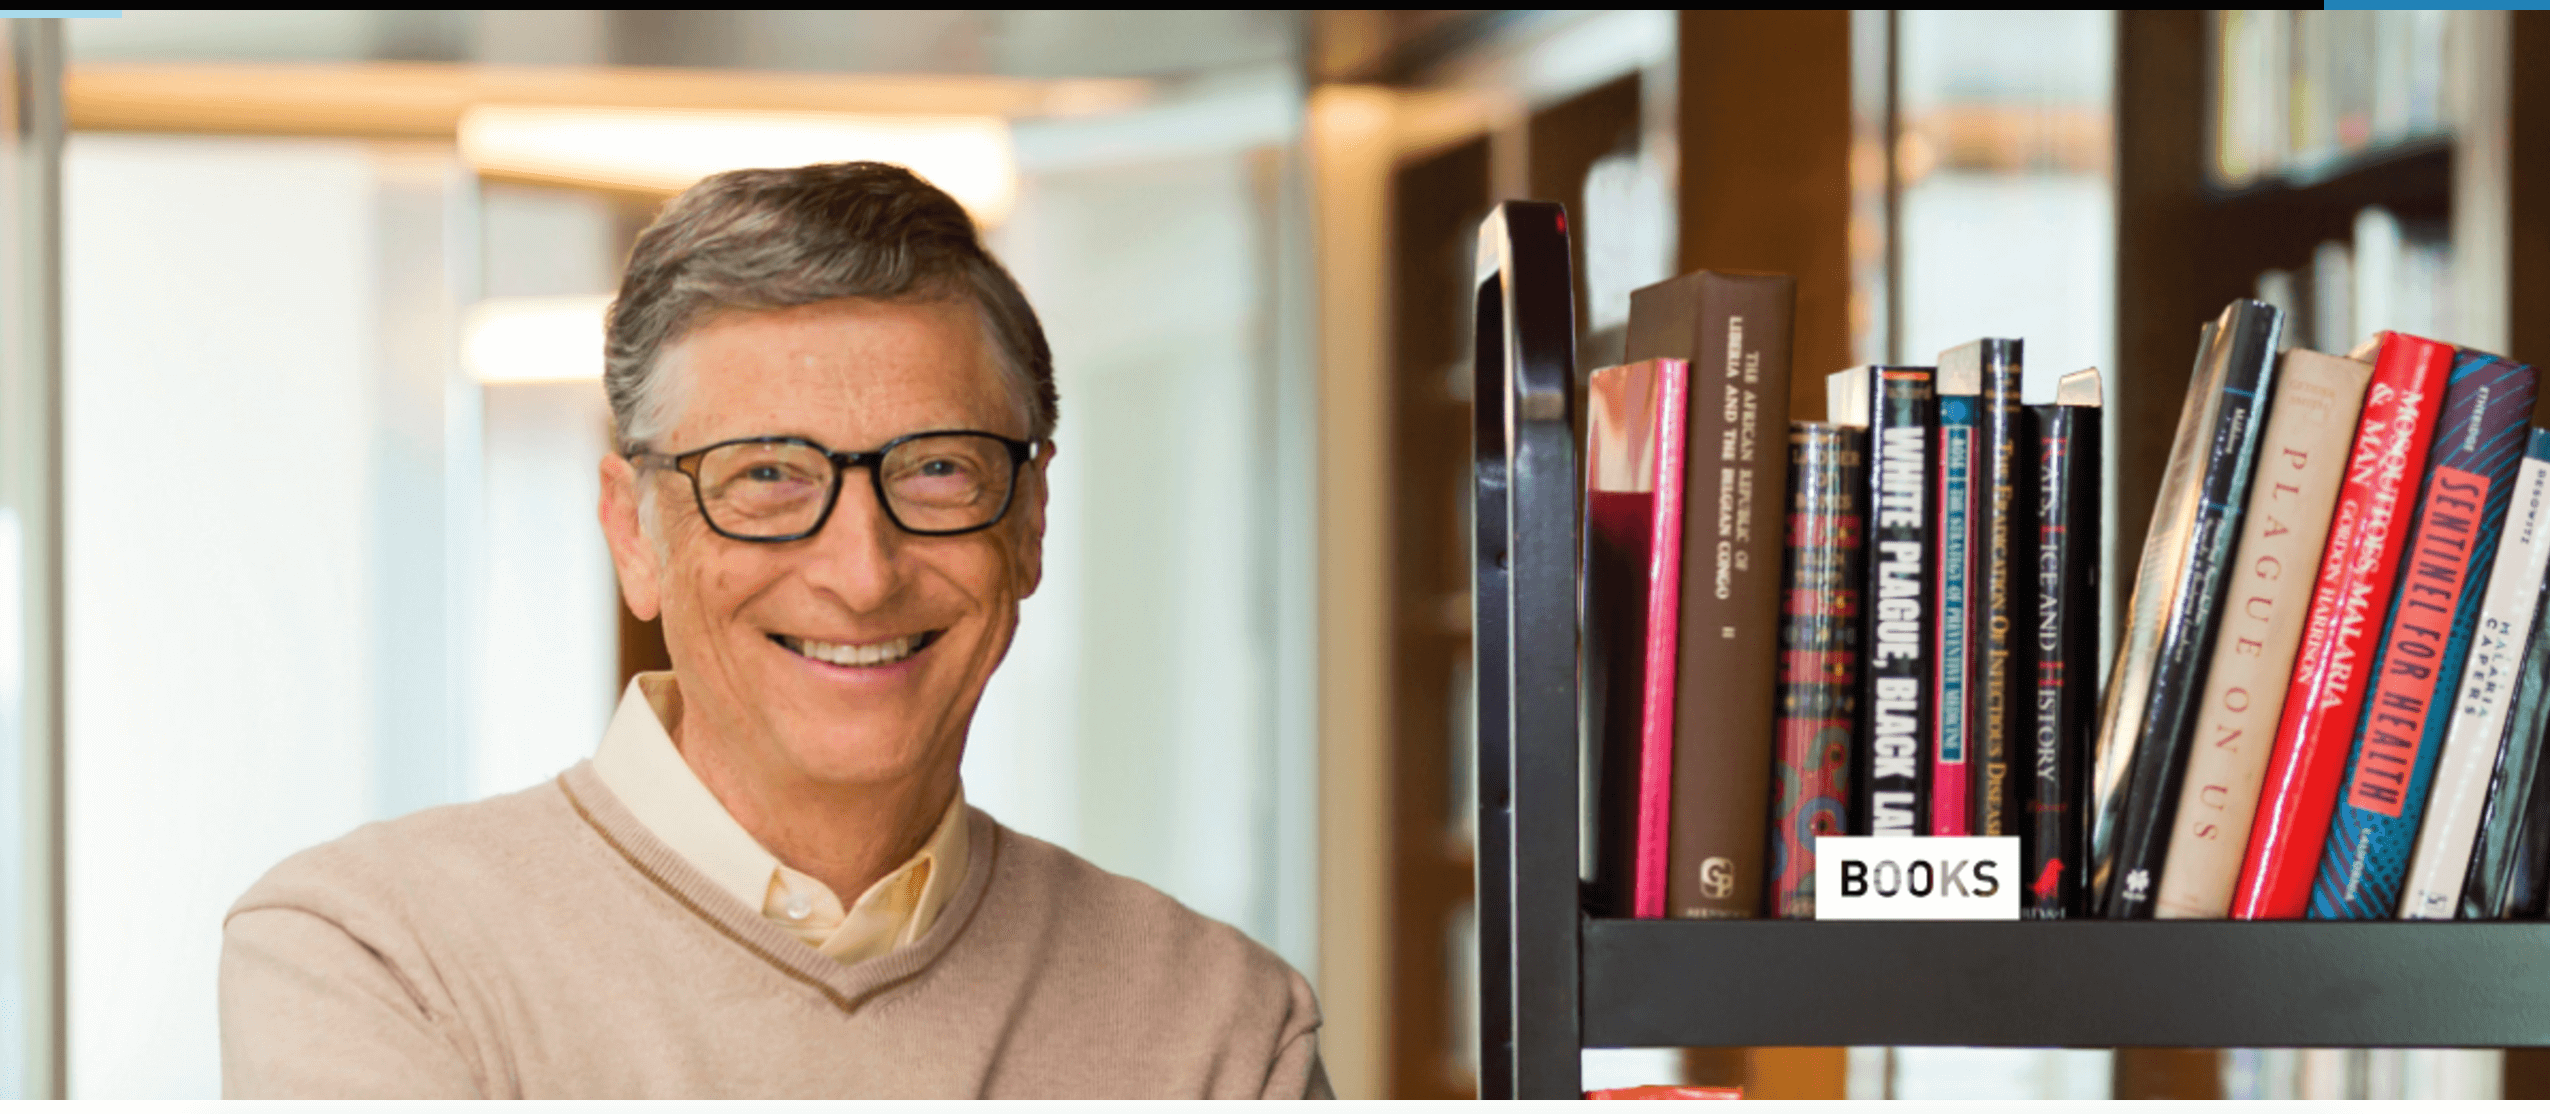 View Bill Gates' Mobile Library: The Books & Courses That ...